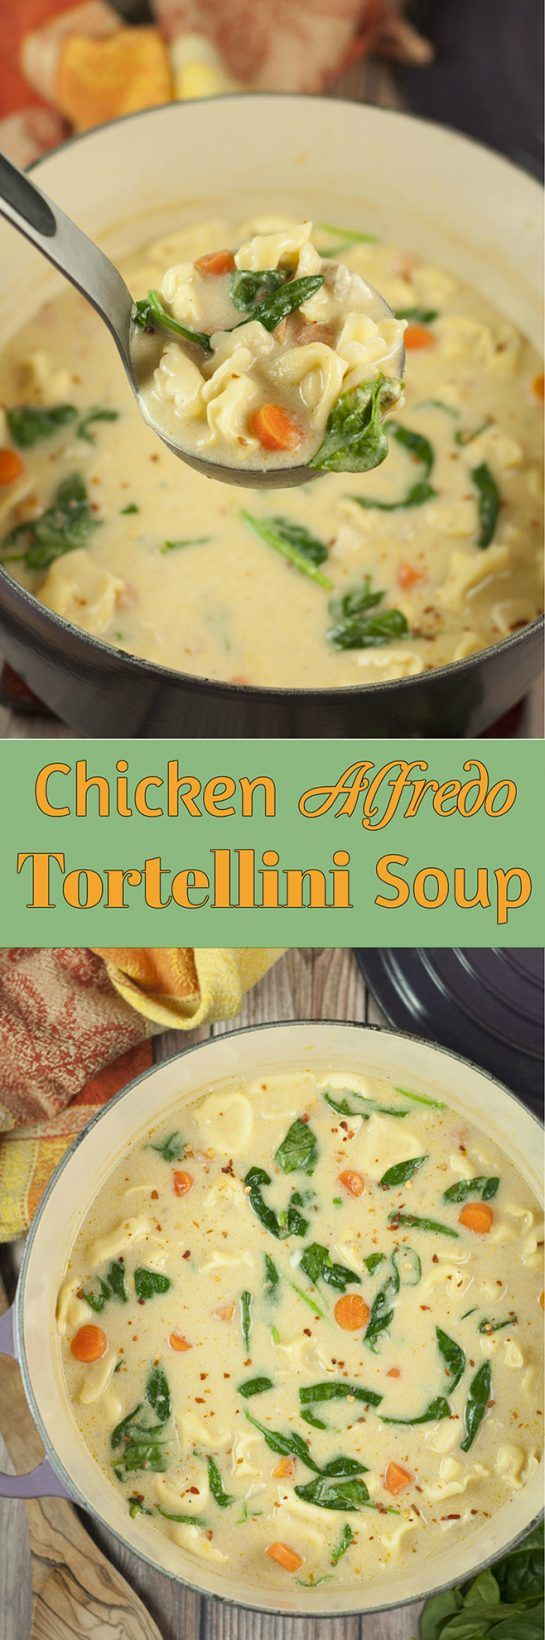 Easy 30 Minute Chicken Alfredo Tortellini Soup where the flavors blend together so well everyone will be begging for seconds! The Parmesan Alfredo sauce is the special ingredient that makes this hearty soup rich and creamy. #soup #chicken #pasta #italian